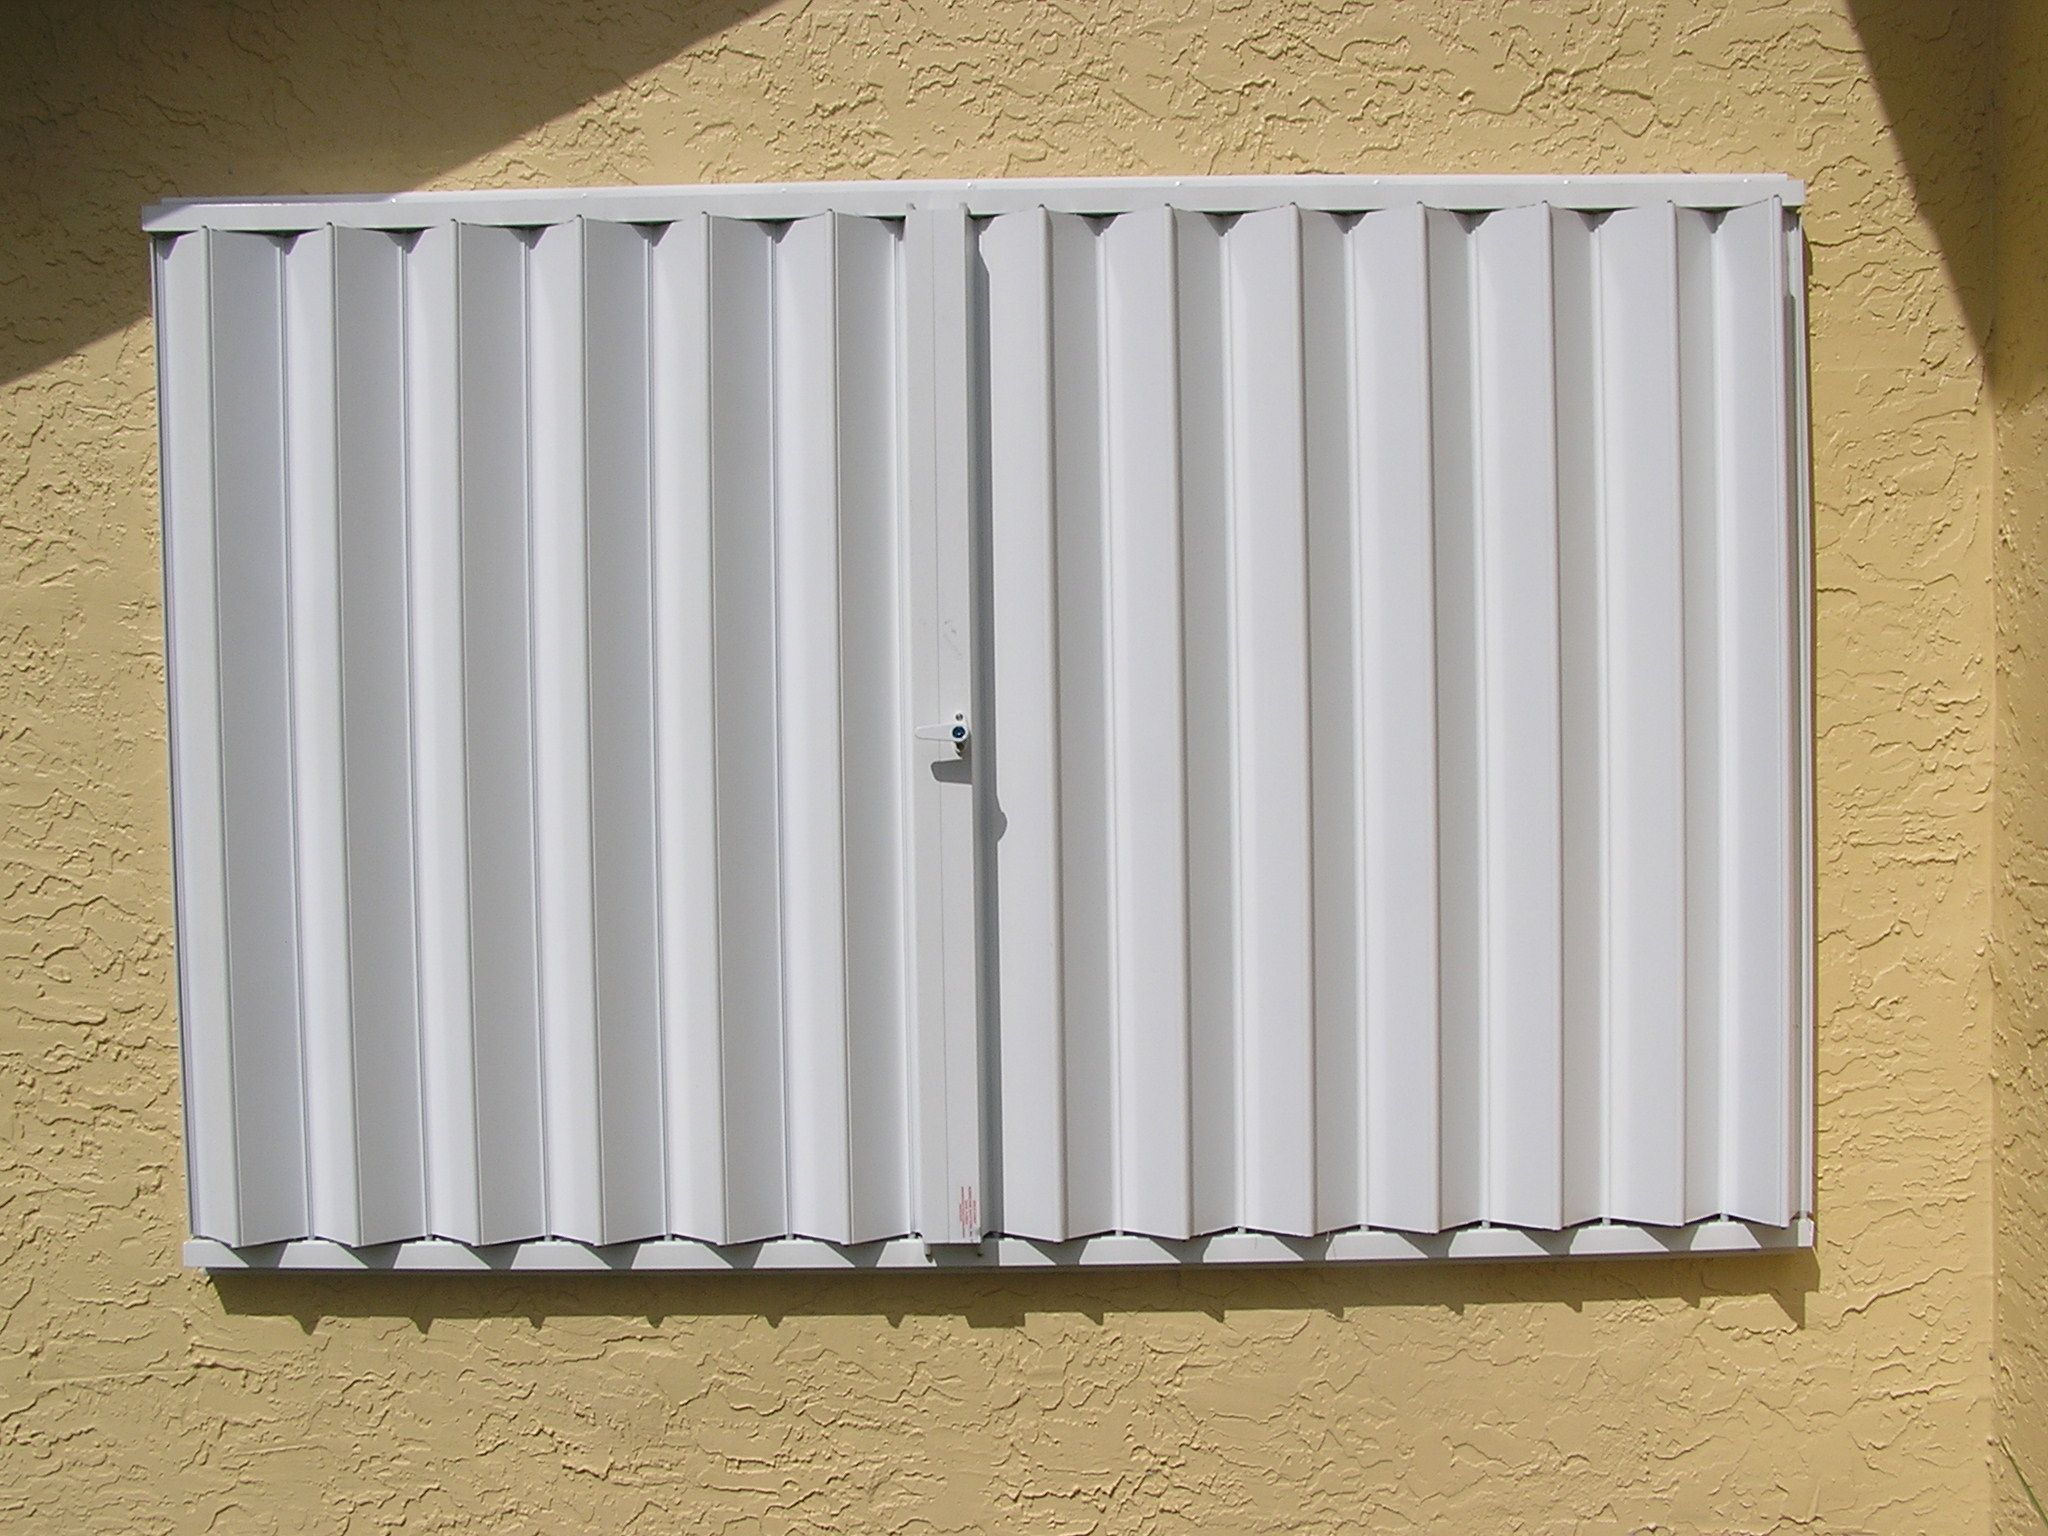 Accordion Hurricane Shutters Bertha Hv Accordion Shutters Ours Come With A 10 Year Warranty Shutters Red Shutters Hurricane Shutters